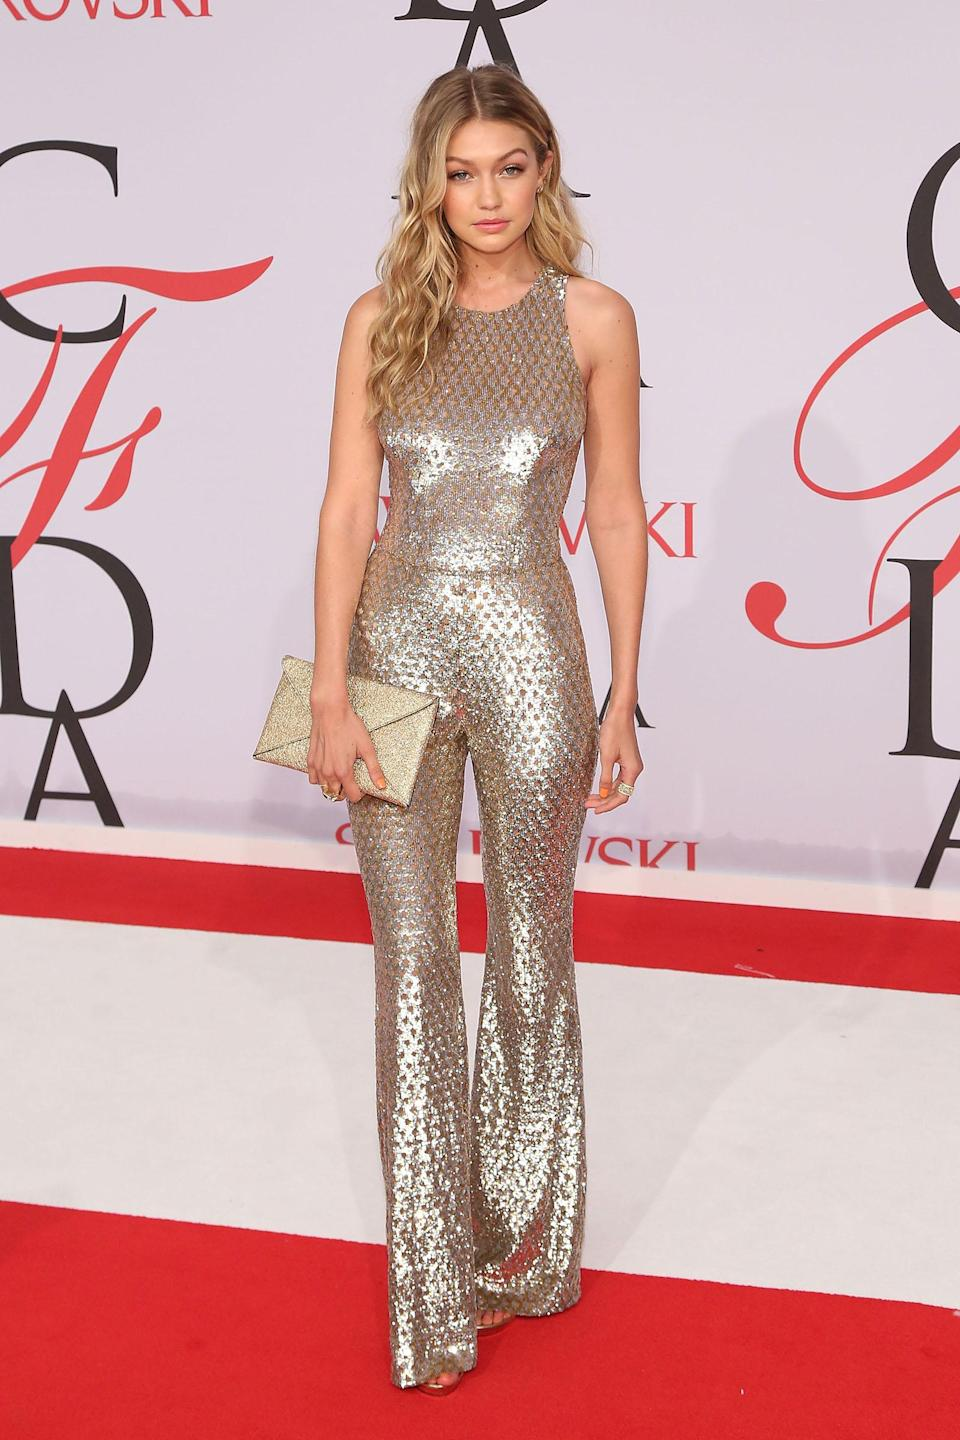 <p>The supermodel paid homage to the origins of the jumpsuit, wearing this '70s-inspired Michael Kors look at the 2015 CFDA Awards. (Photo: Taylor Hill/FilmMagic) </p>